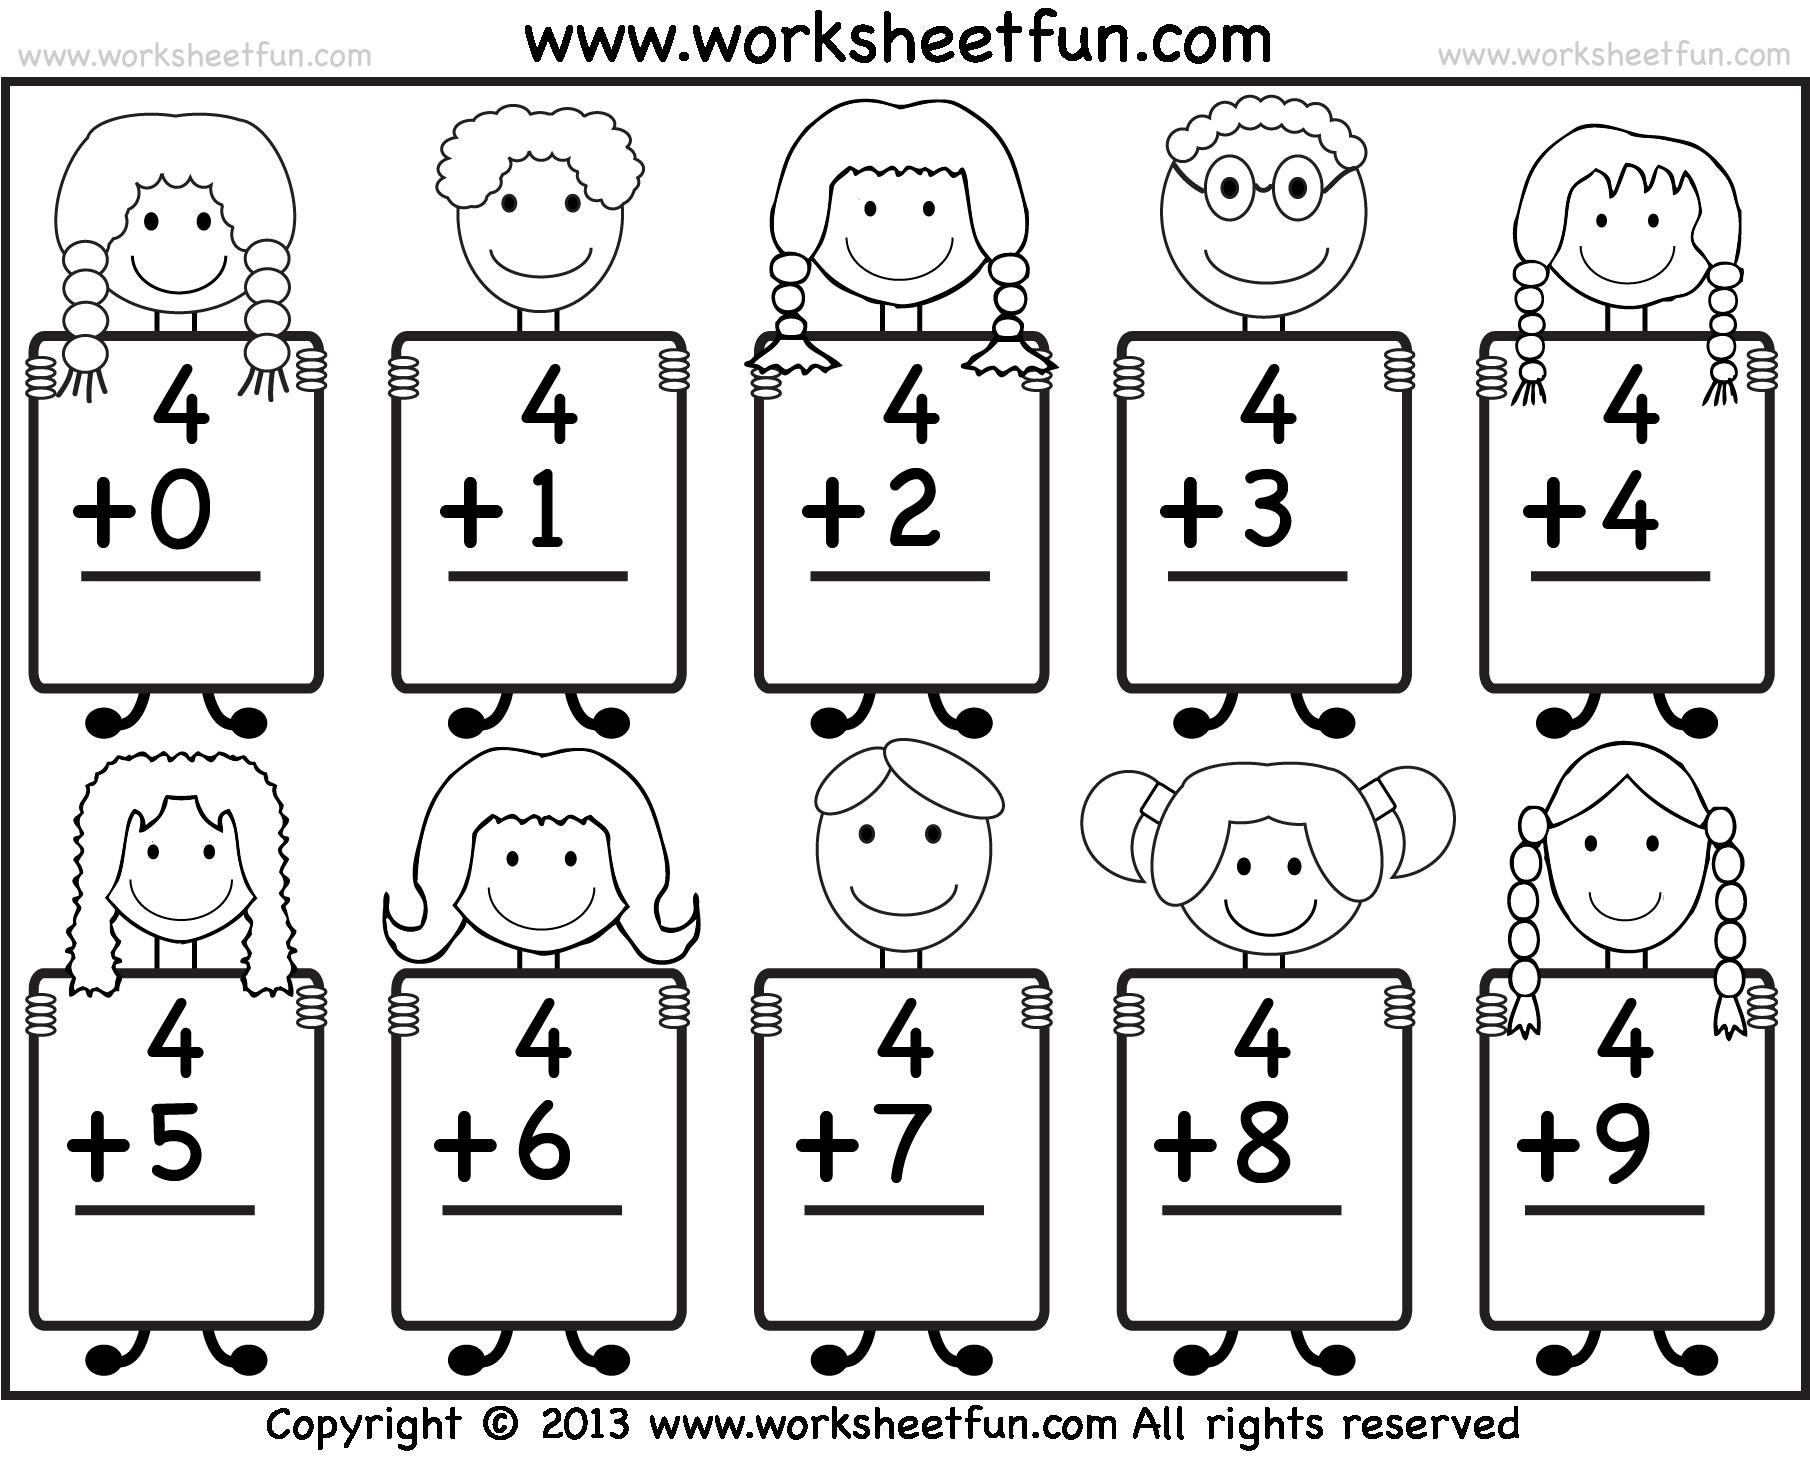 freeprintablemathworksheetsforkindergartenaddition1png – Kindergarten Worksheets Addition